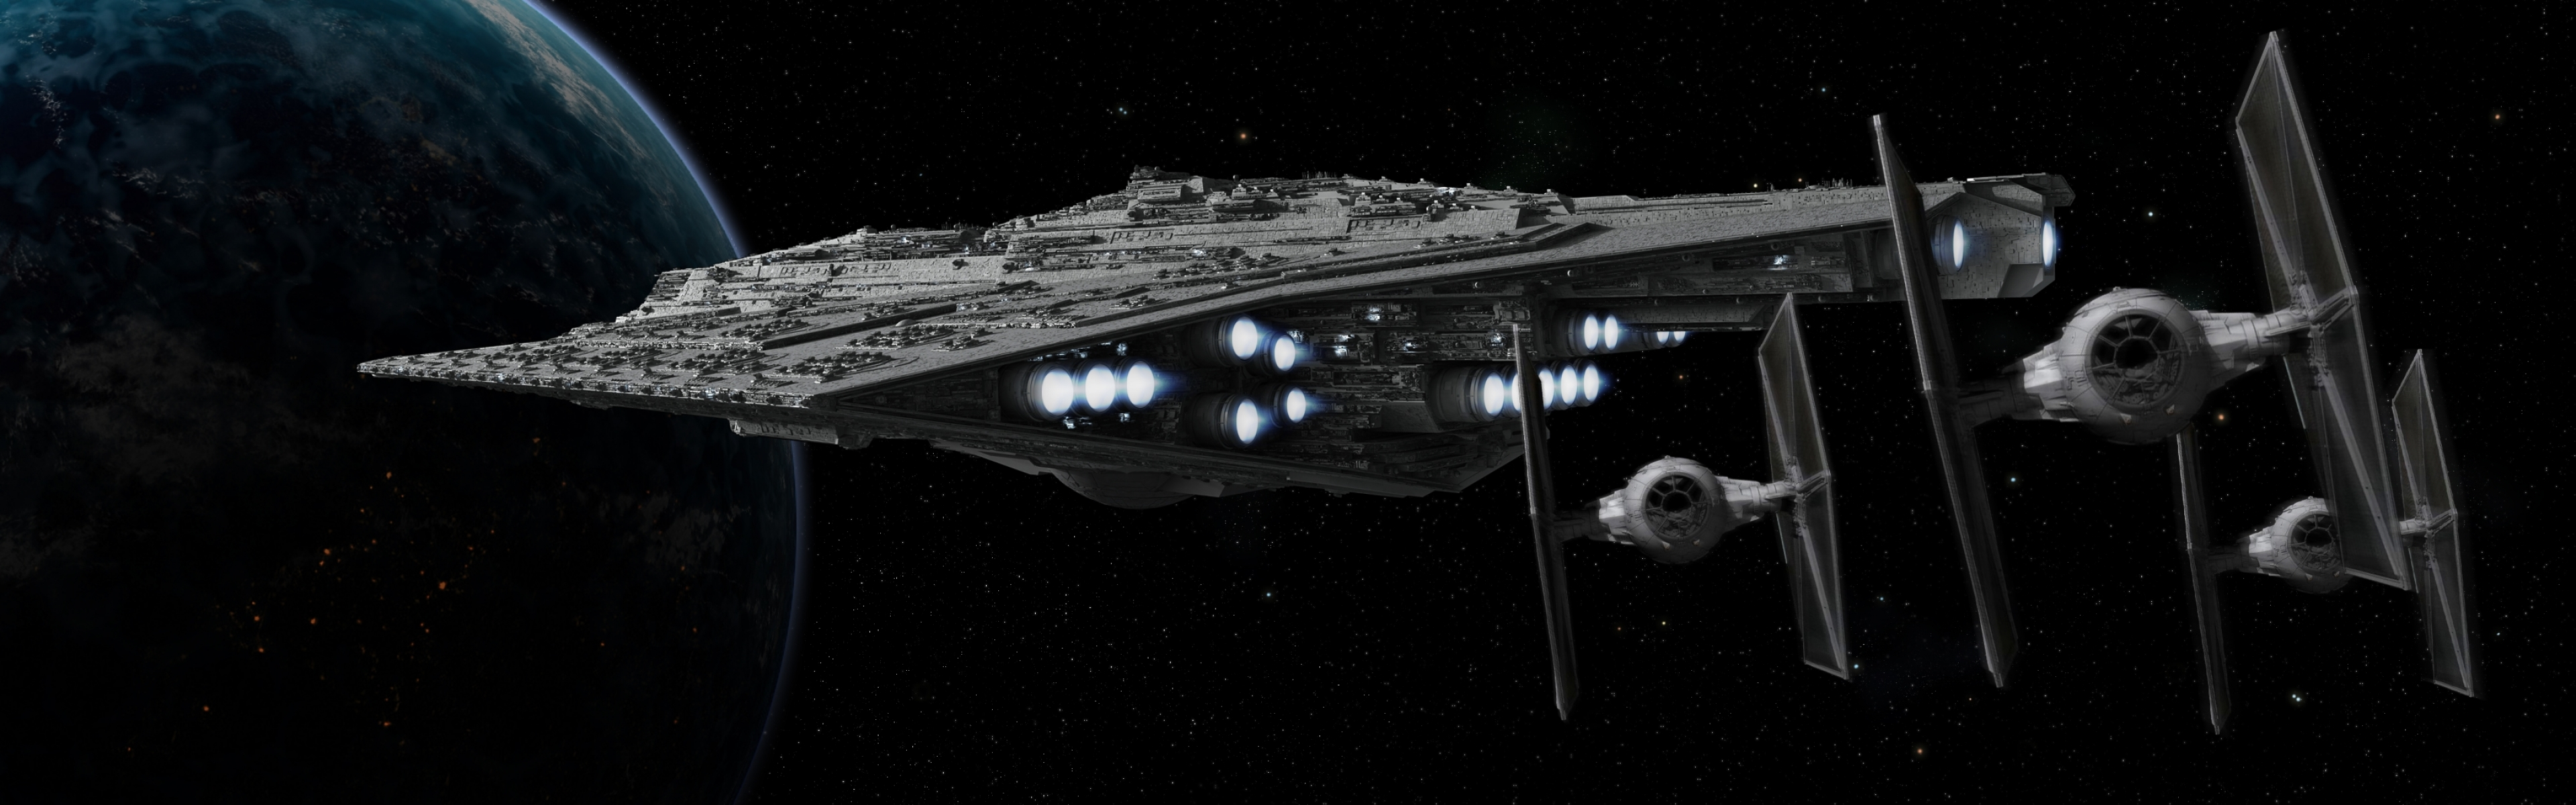 star wars outer space spaceships vehicles 3360x1050 wallpaper High 3840x1200